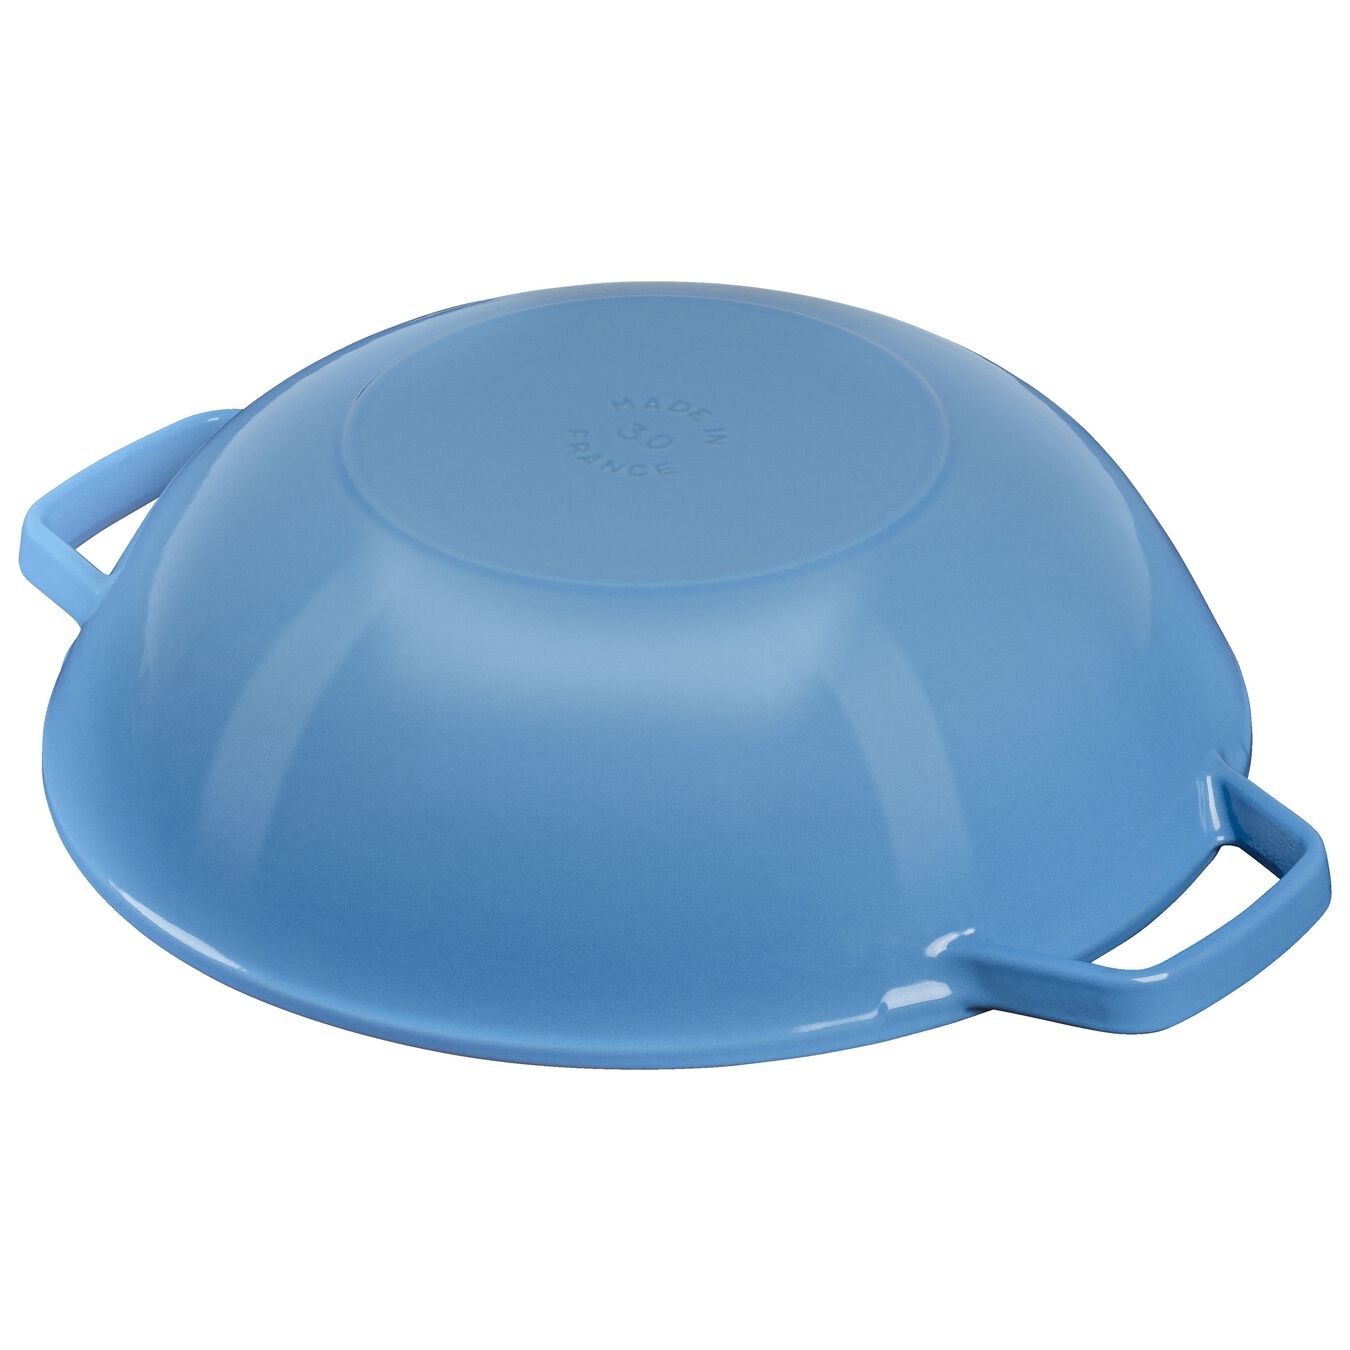 4.5-qt Perfect Pan - Visual Imperfections - French Blue,,large 3